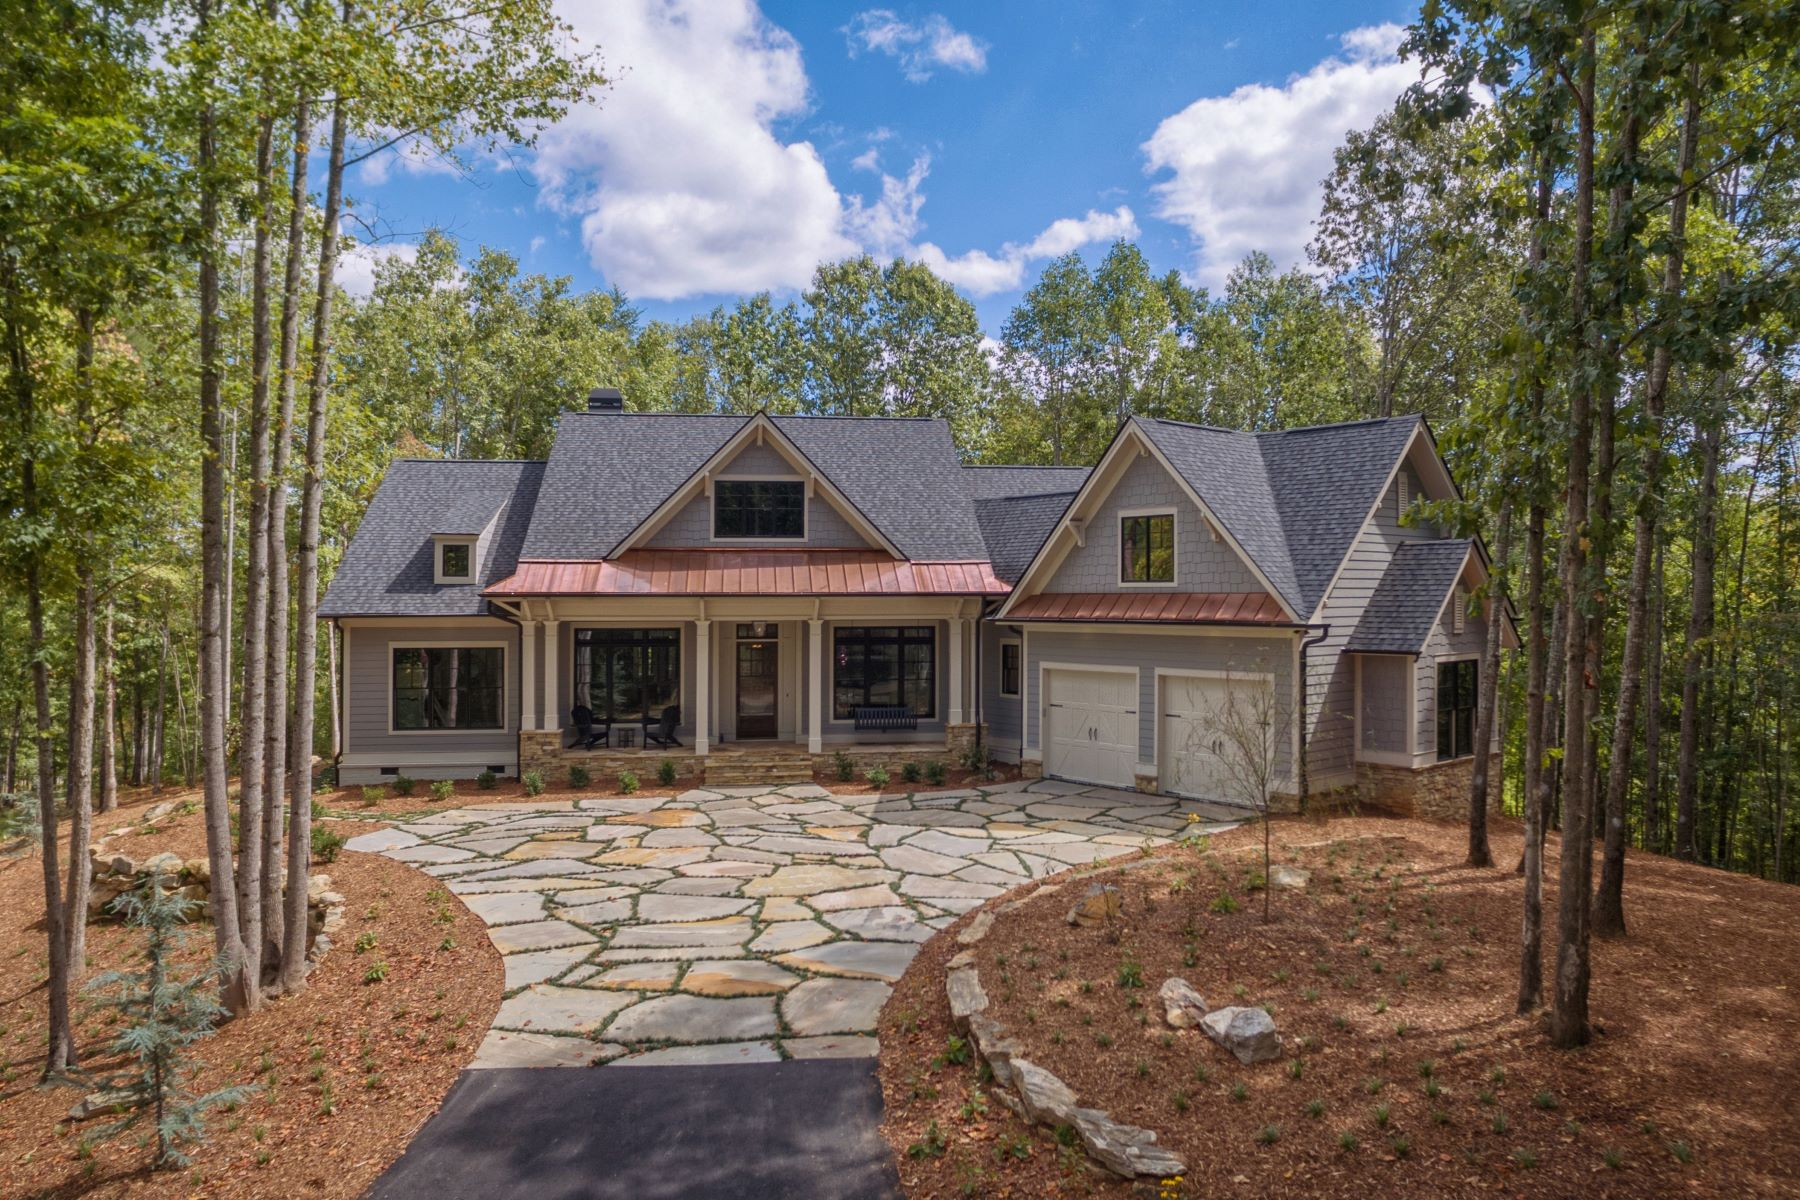 Single Family Homes for Active at Elegance but Comfortable 109 Tranquil Cove Six Mile, South Carolina 29682 United States